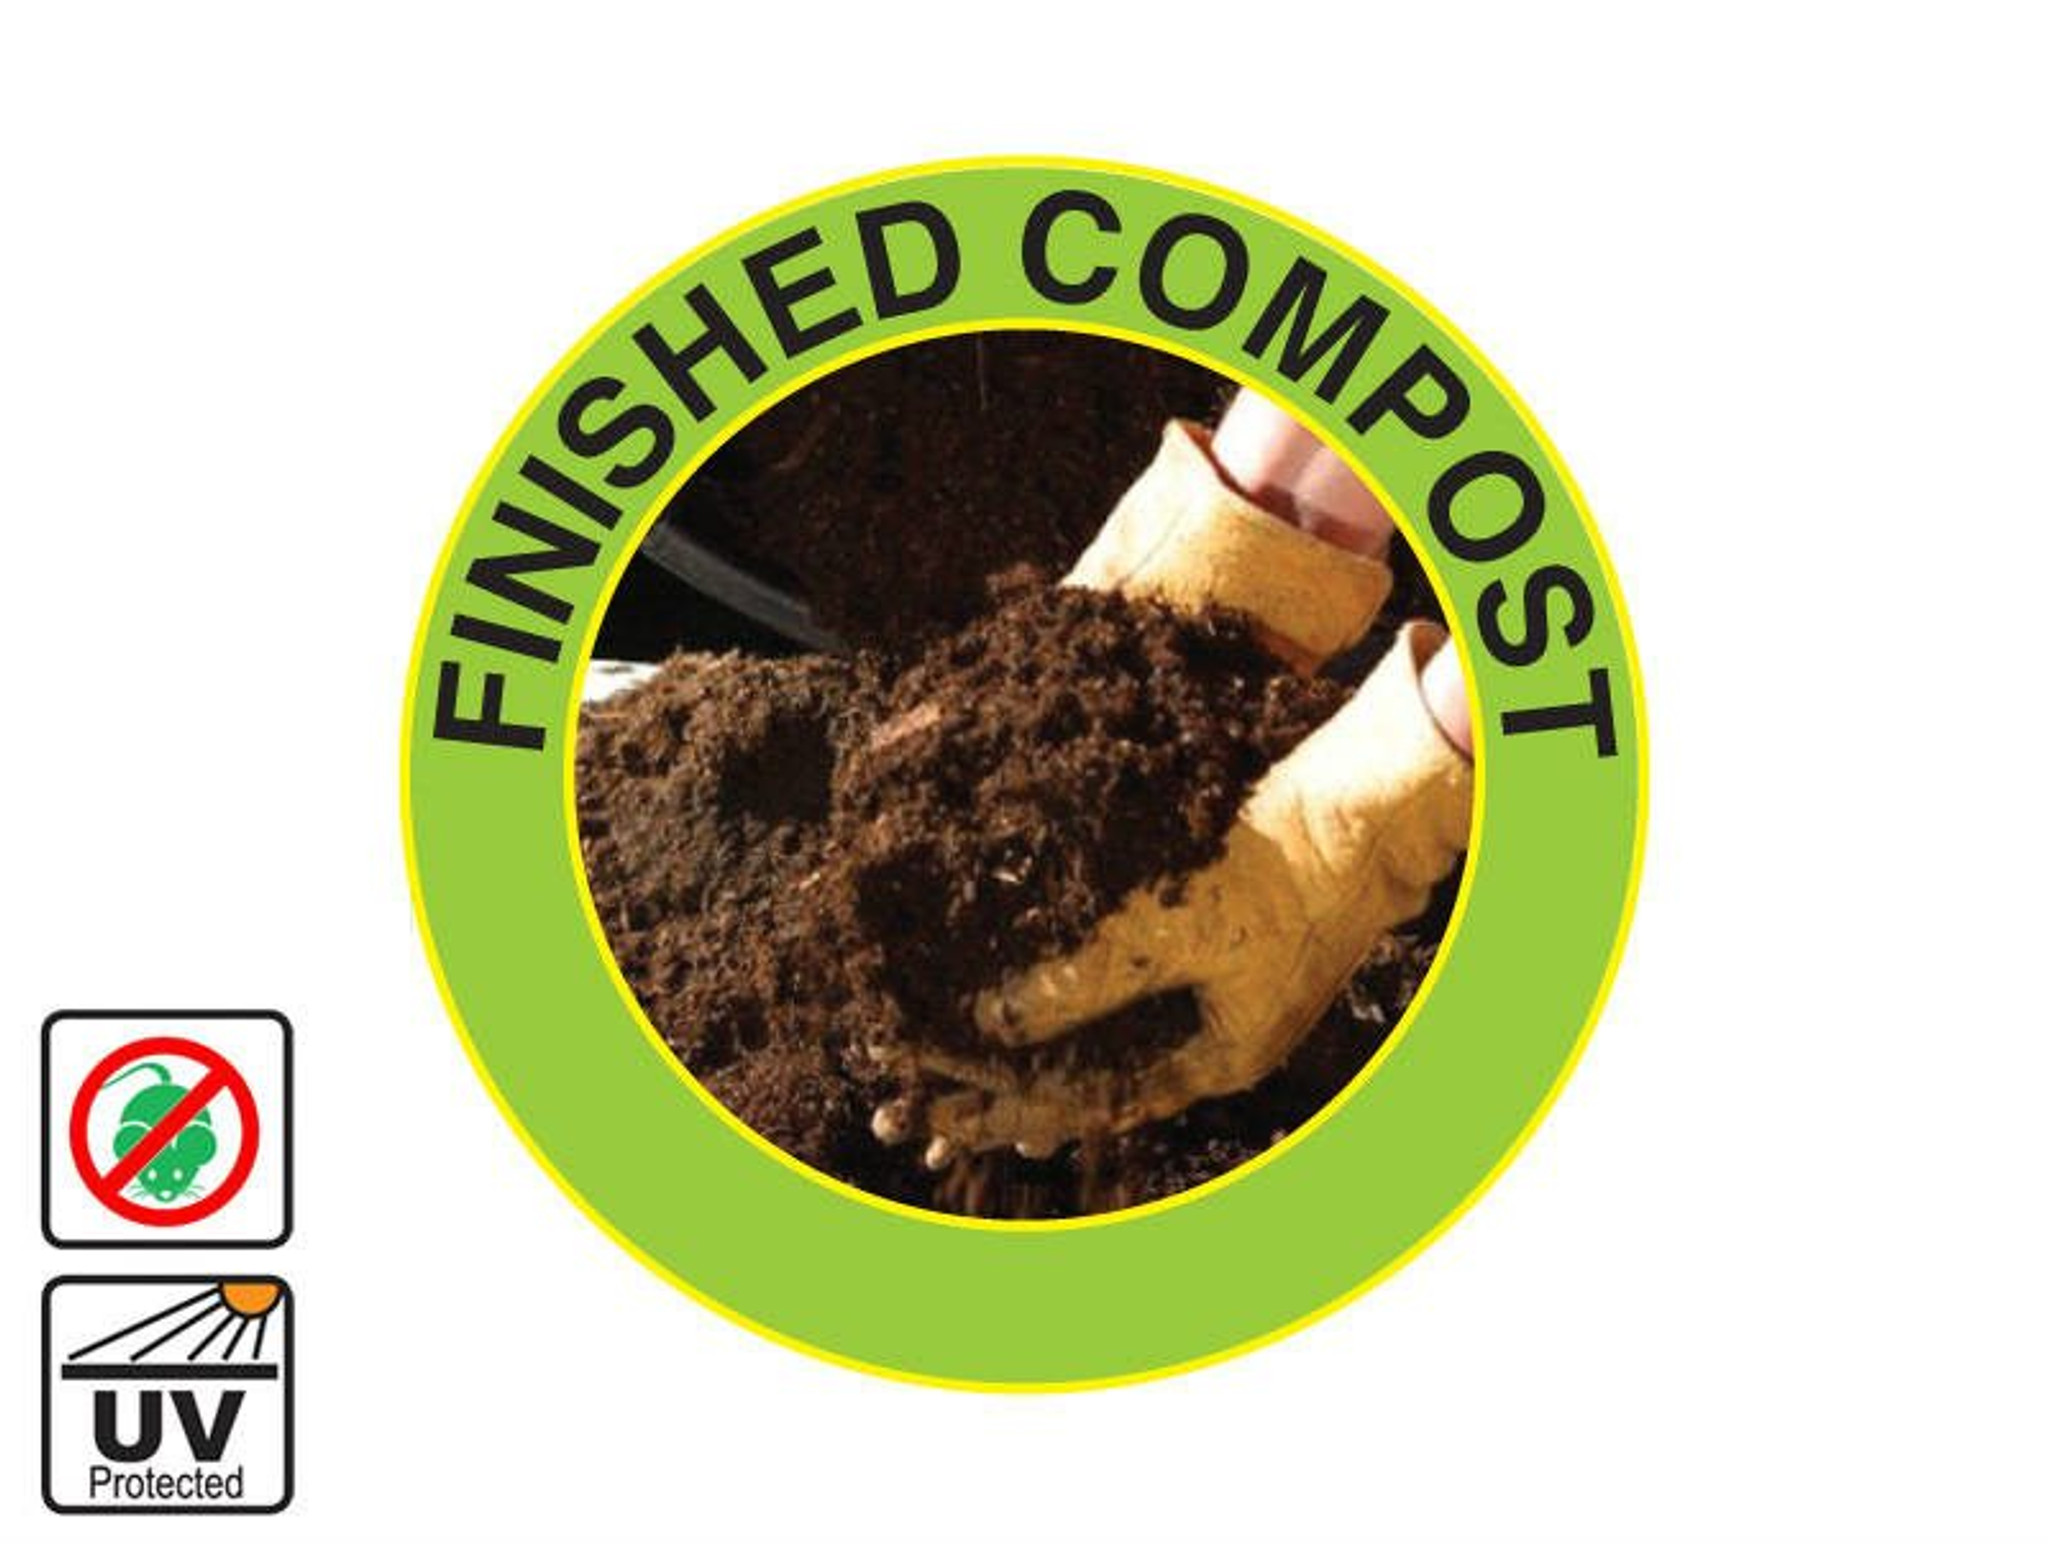 faster composting process